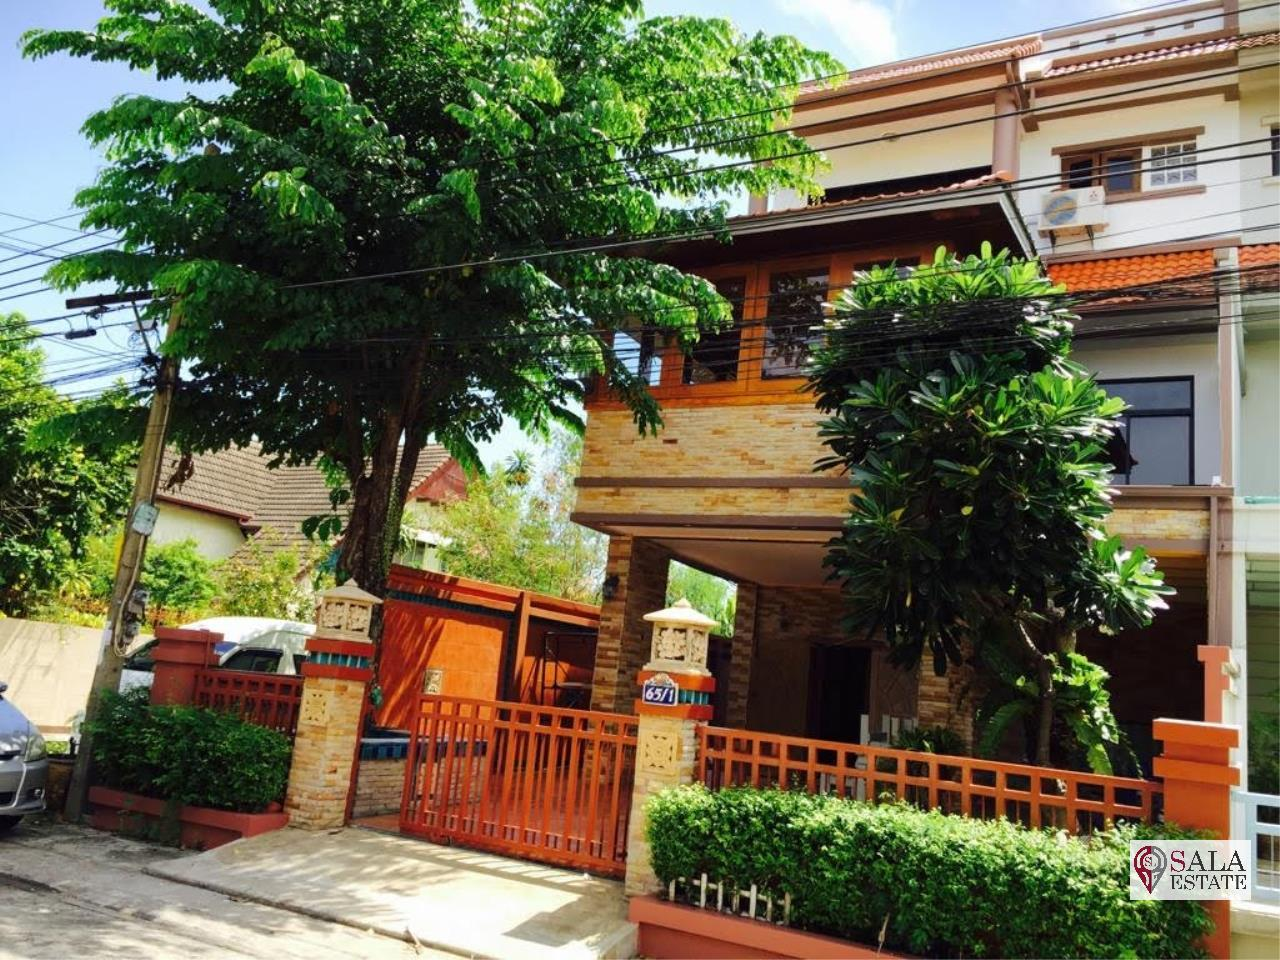 SALA ESTATE Agency's ( FOR SALE ) TOWNHOME - SUKHUMVIT 101/1, 3 FLOORS, 4 BEDROOMS 4 BATHROOMS, FULLY FURNISHED 1